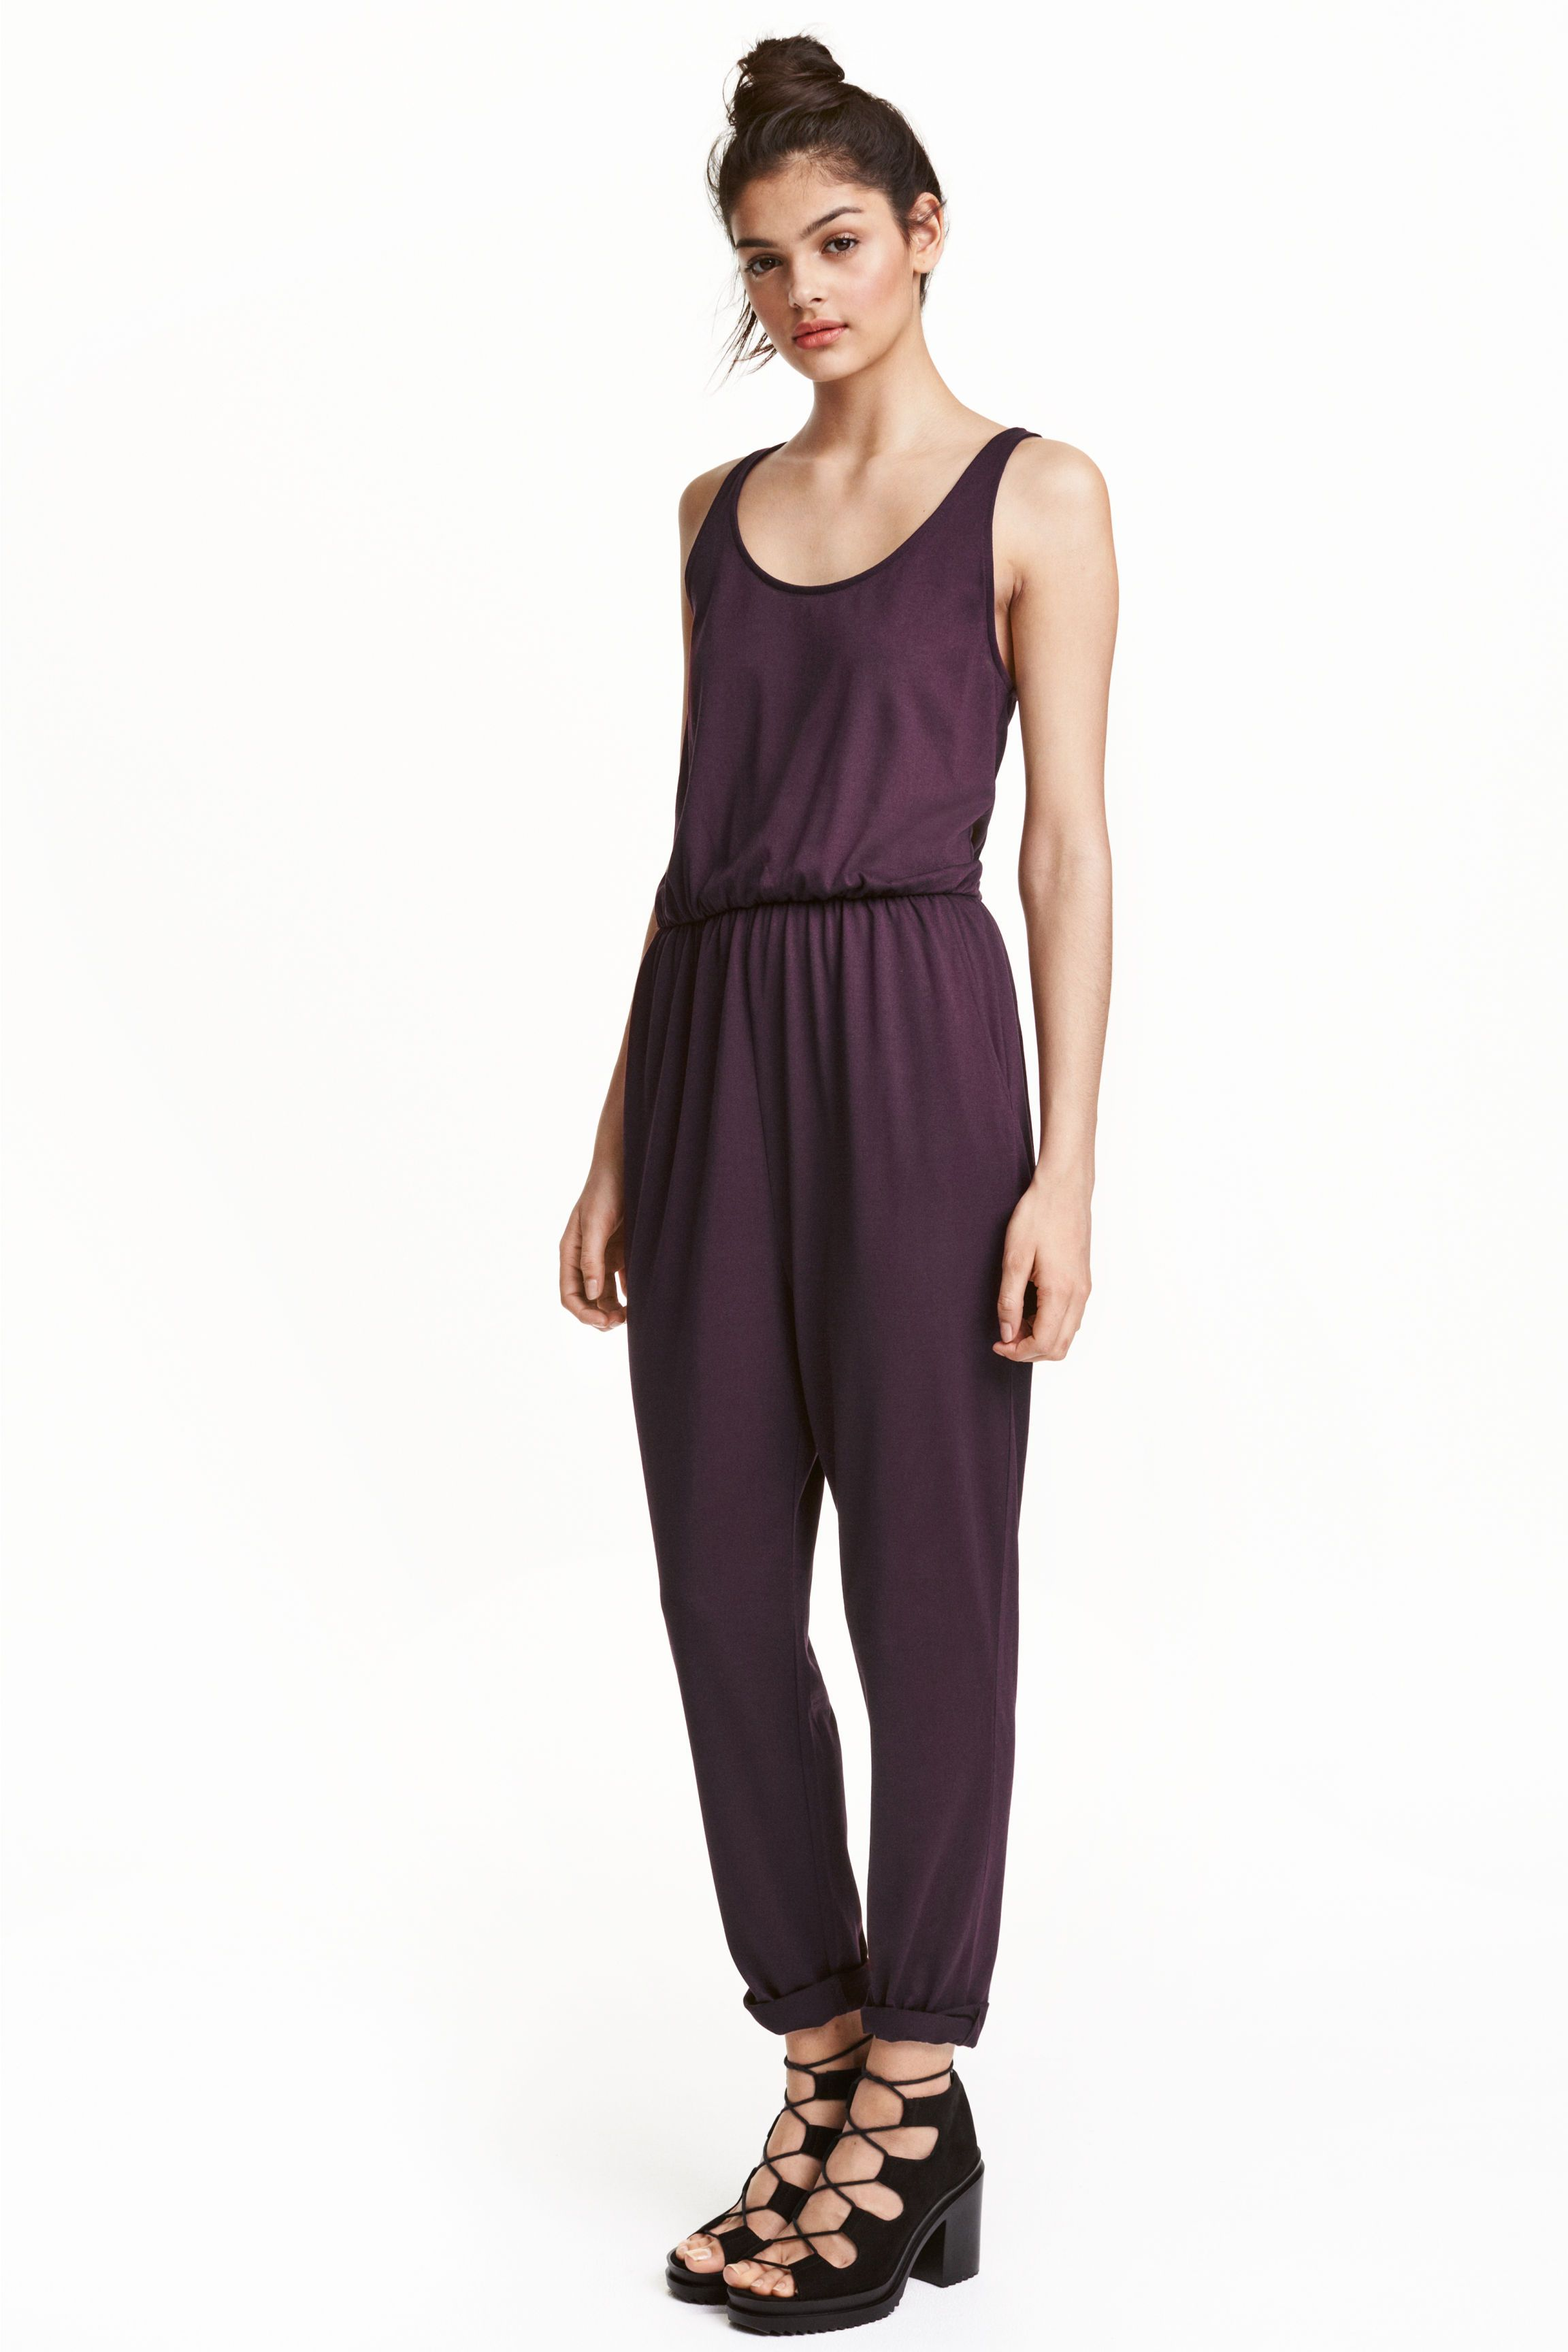 Free Shipping Fashion Style Free Shipping Fast Delivery H&M + Sleeveless jumpsuit Brand New Unisex For Sale DkTrH